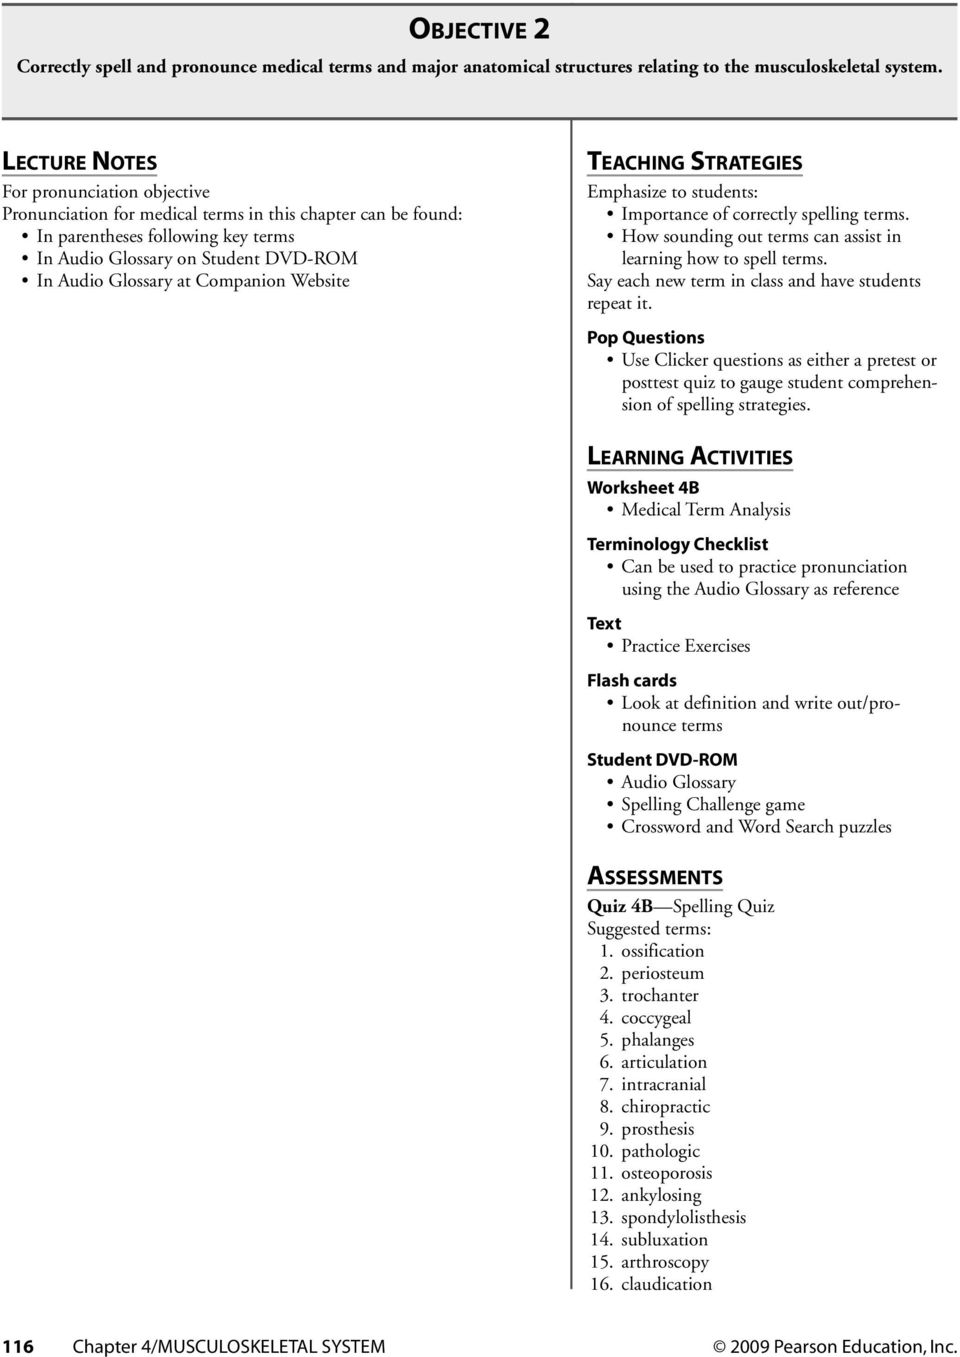 C Hapter 4 Musculoskeletal System Chapter Contents Media Library